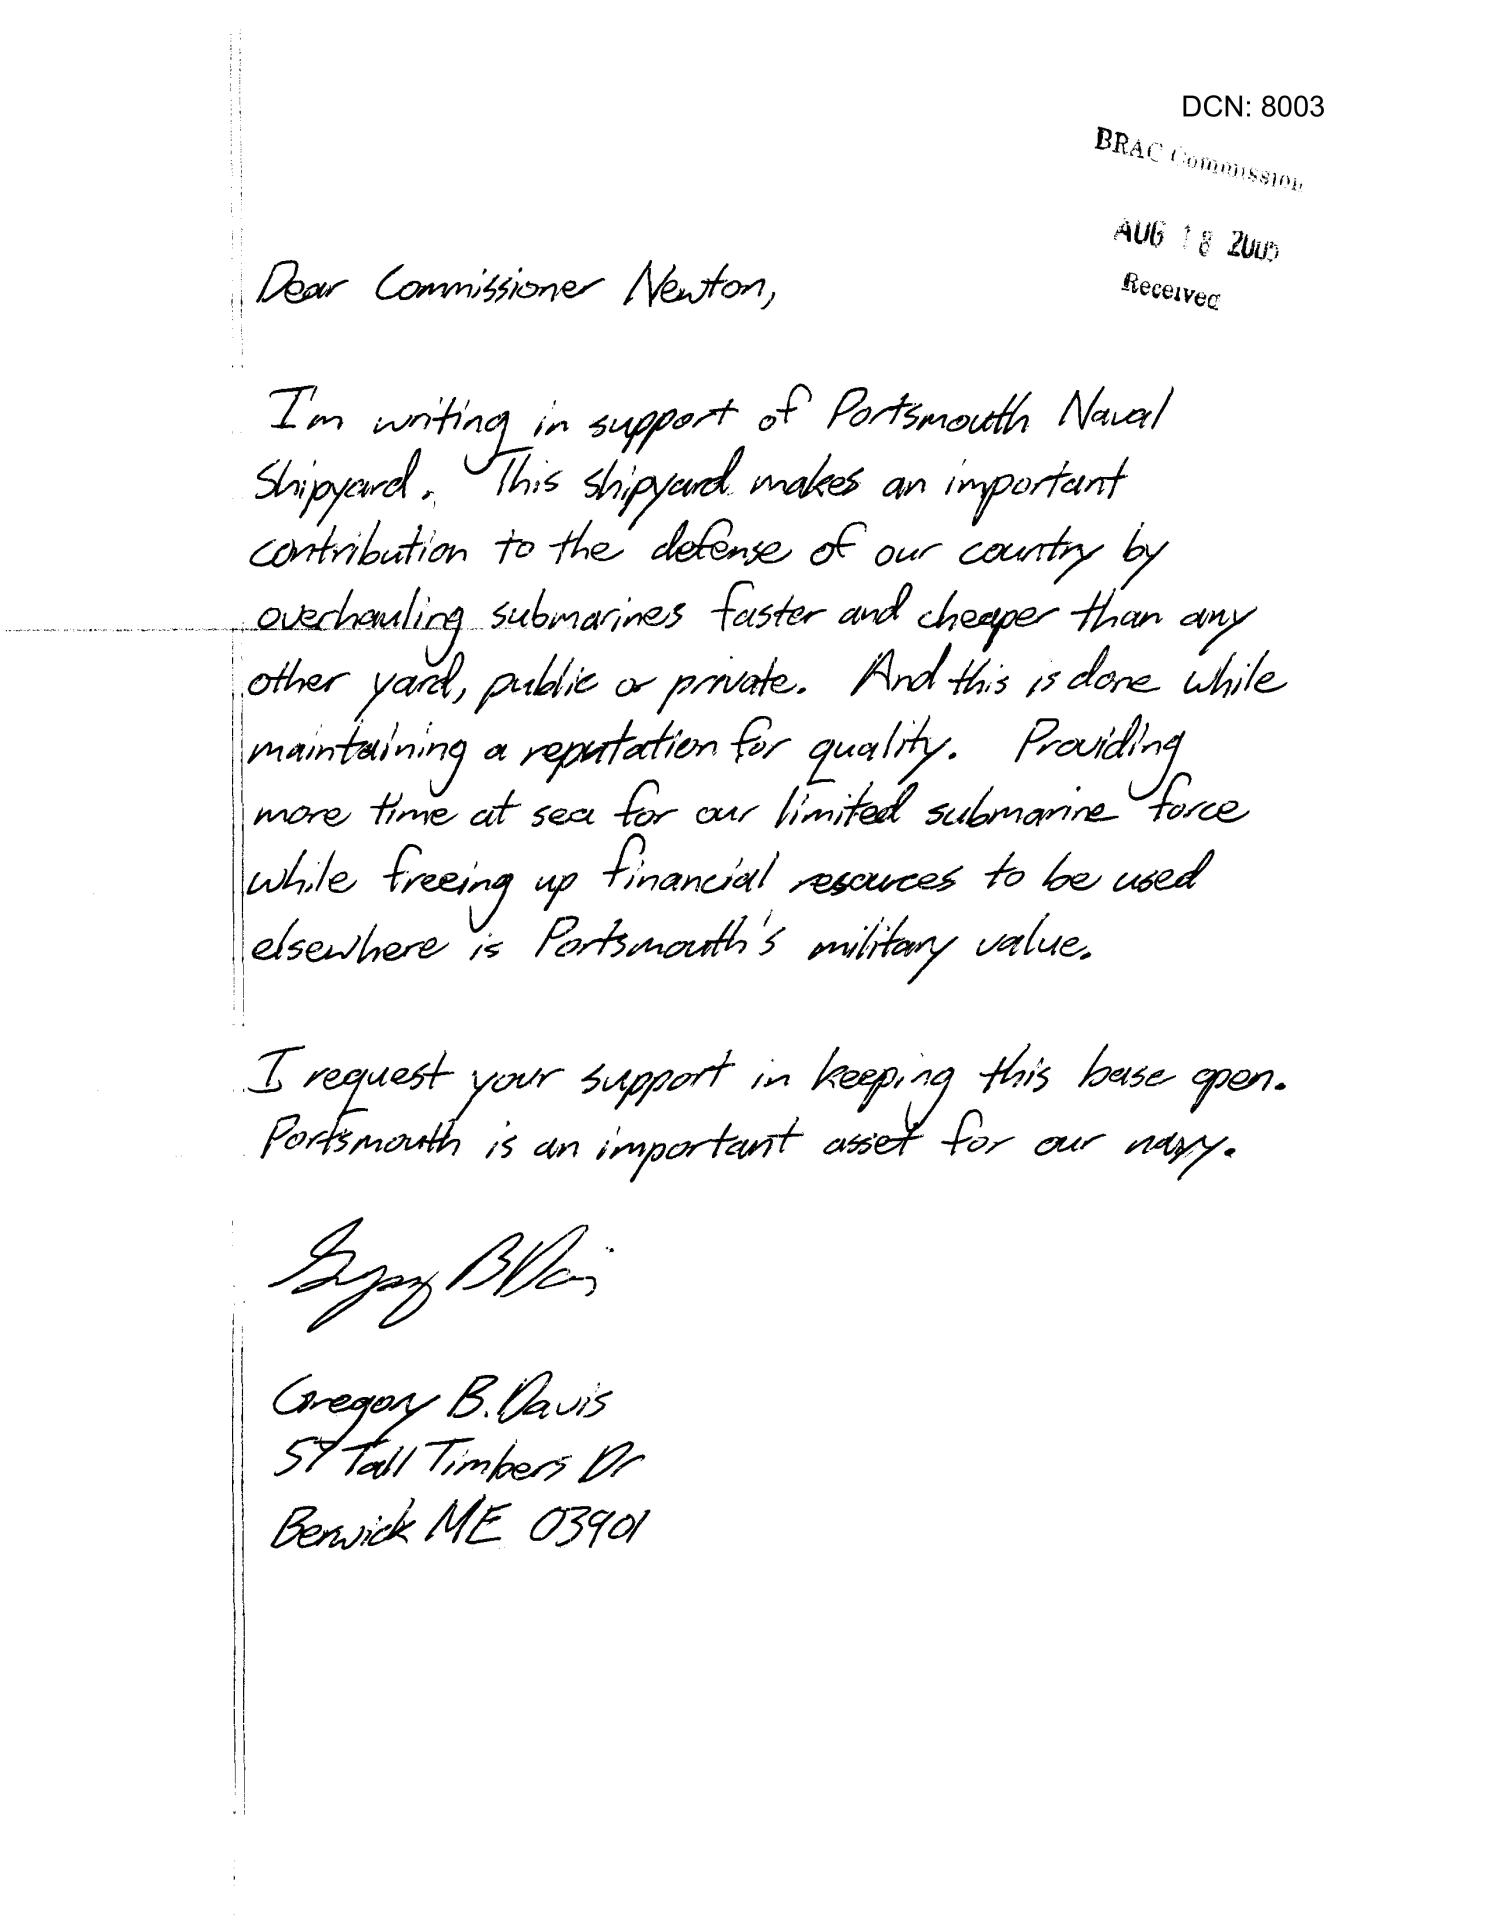 [Letters from Gregory Davis, Edward Woods, and John W. McKinnon to the BRAC Commission - July/August 2005]                                                                                                      [Sequence #]: 1 of 13